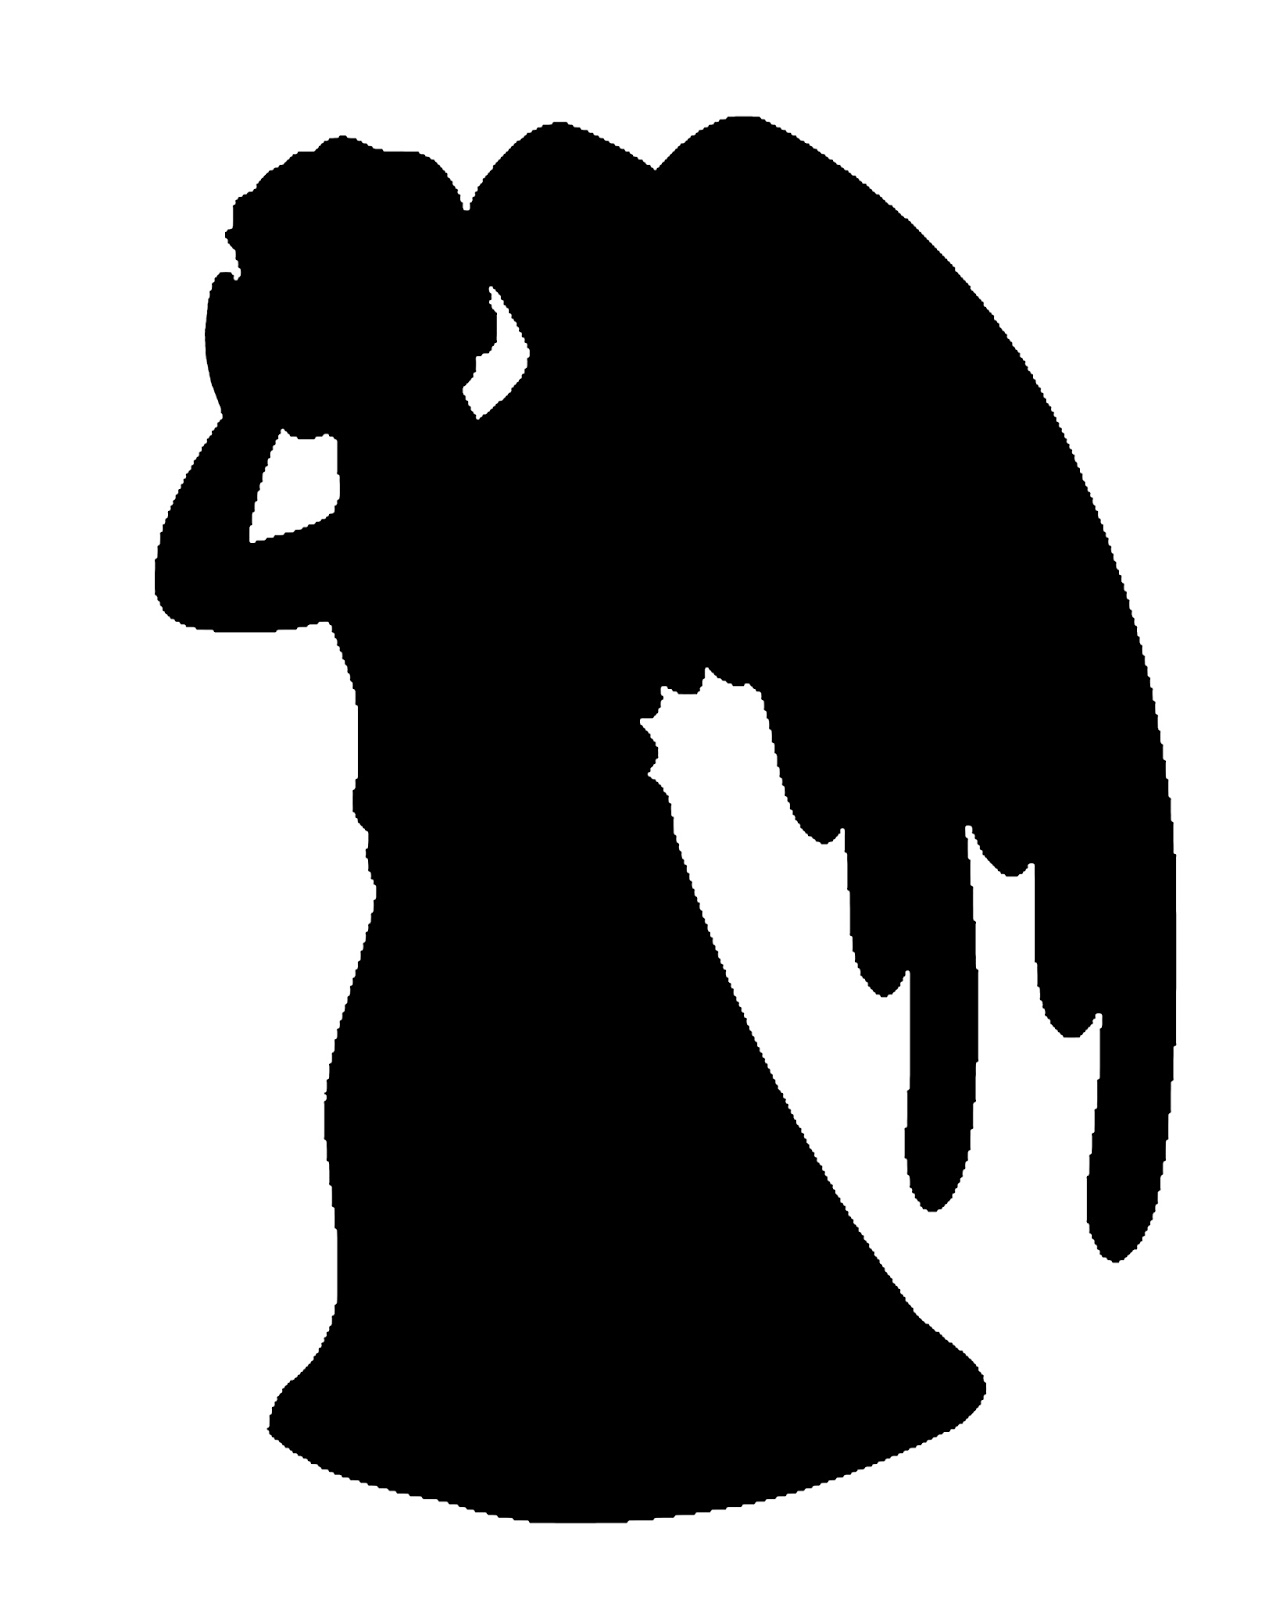 Free Dr Who Clipart, Download Free Clip Art, Free Clip Art.